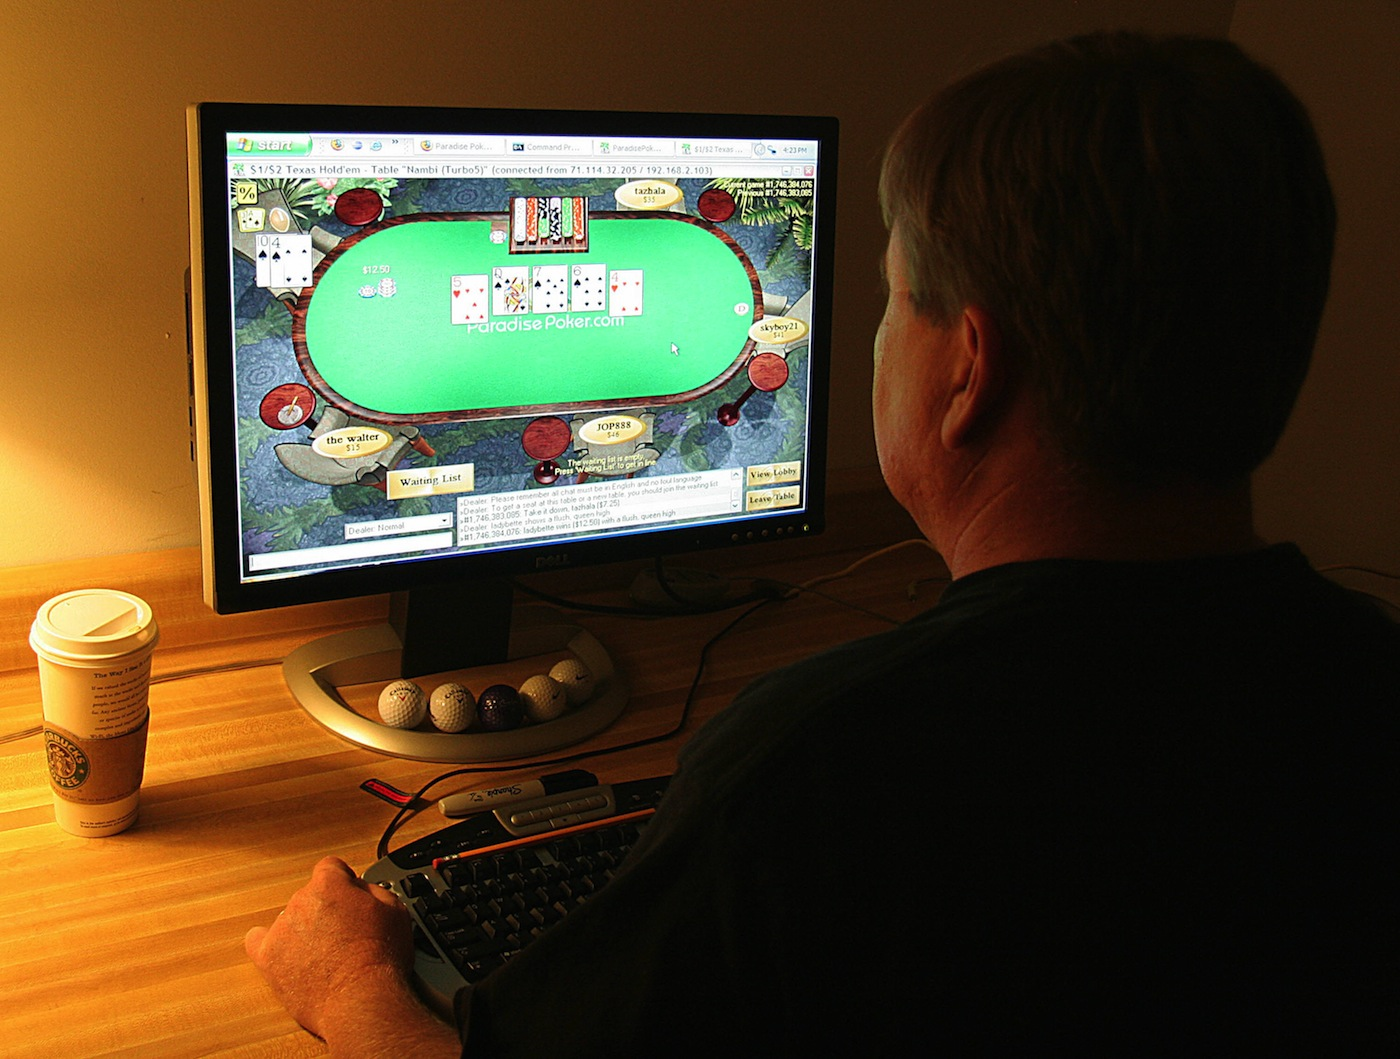 As of 2017, the global online gambling industry was worth USD$46.9 billion. Courtesy Photo